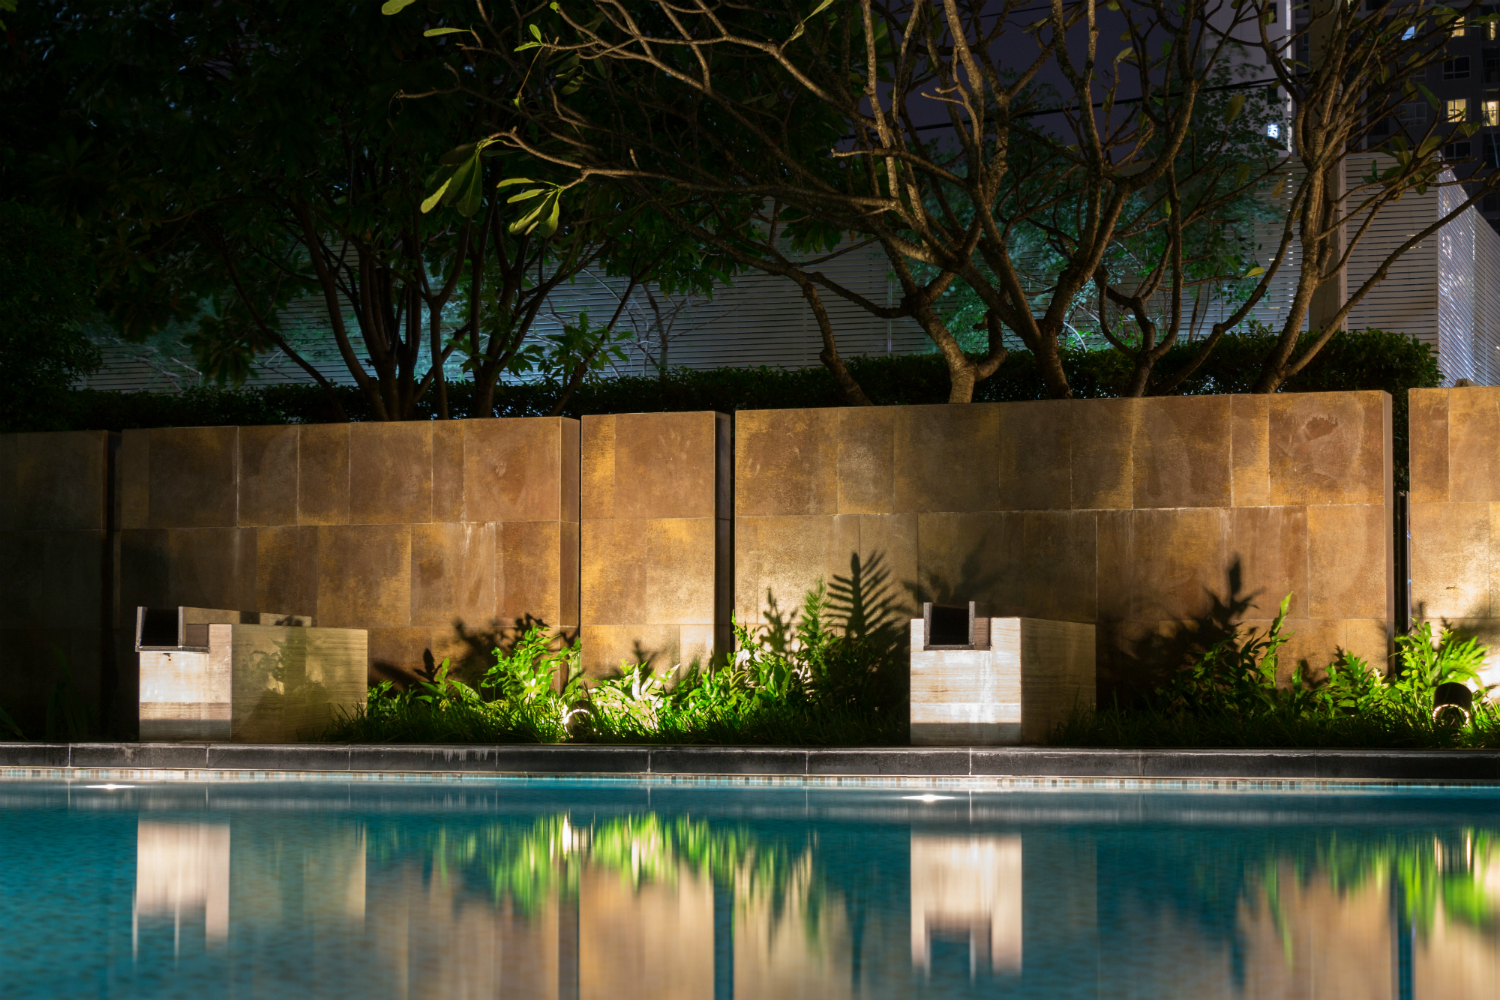 Using Landscape Lighting to Highlight Trees and Plants in your Oyster Bay, NY Home